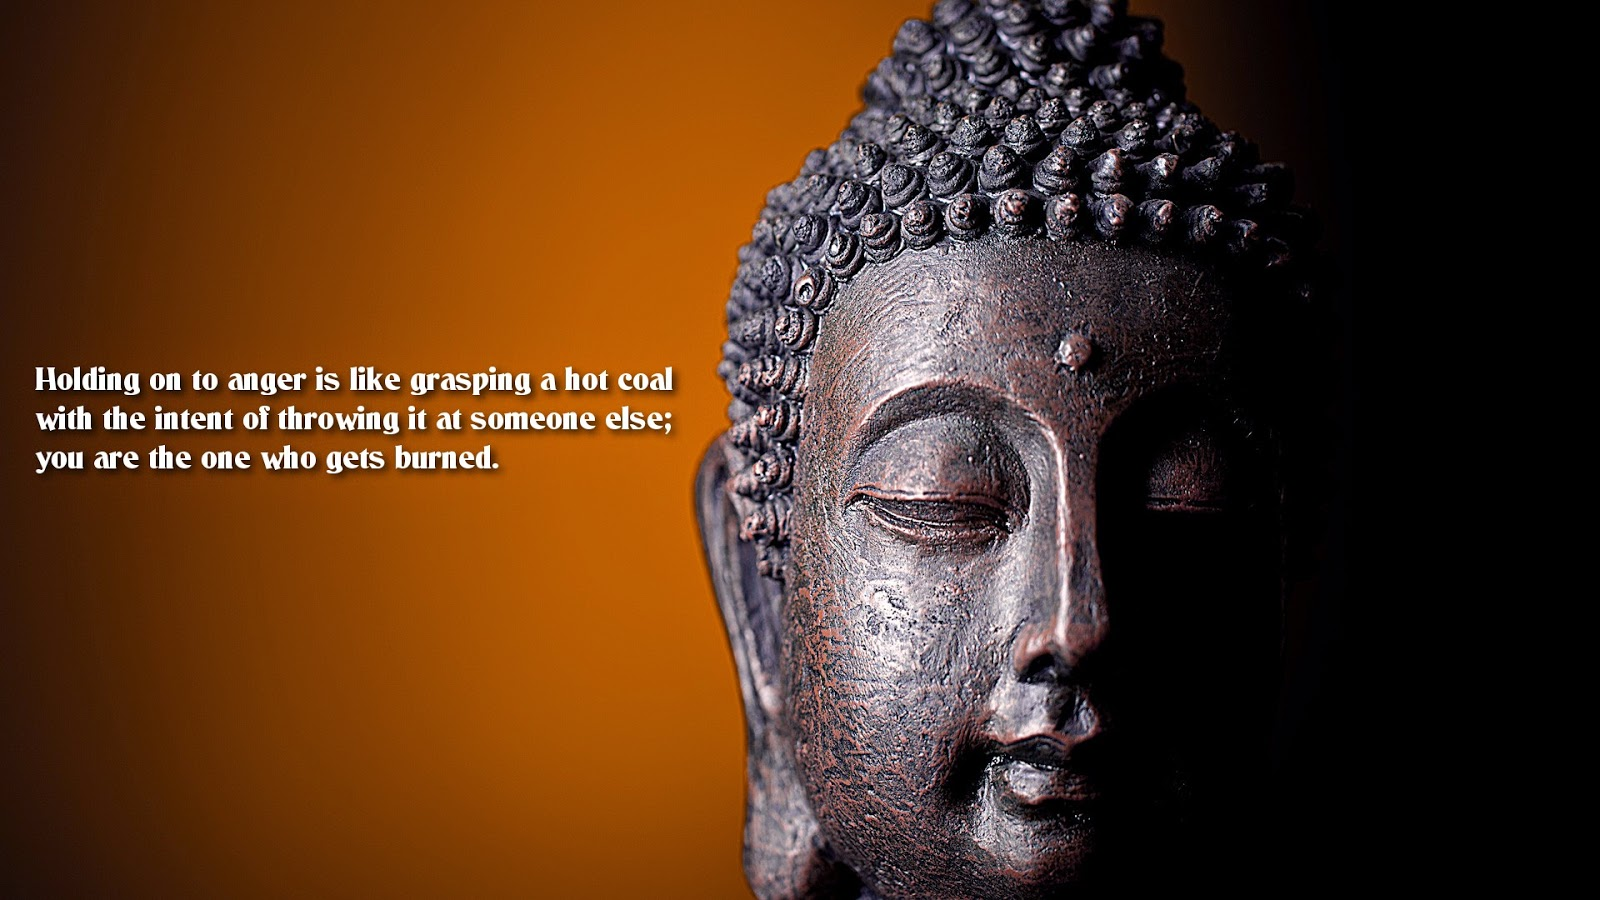 anger-quotes-wallpaper-text-buddha-sayings.jpg